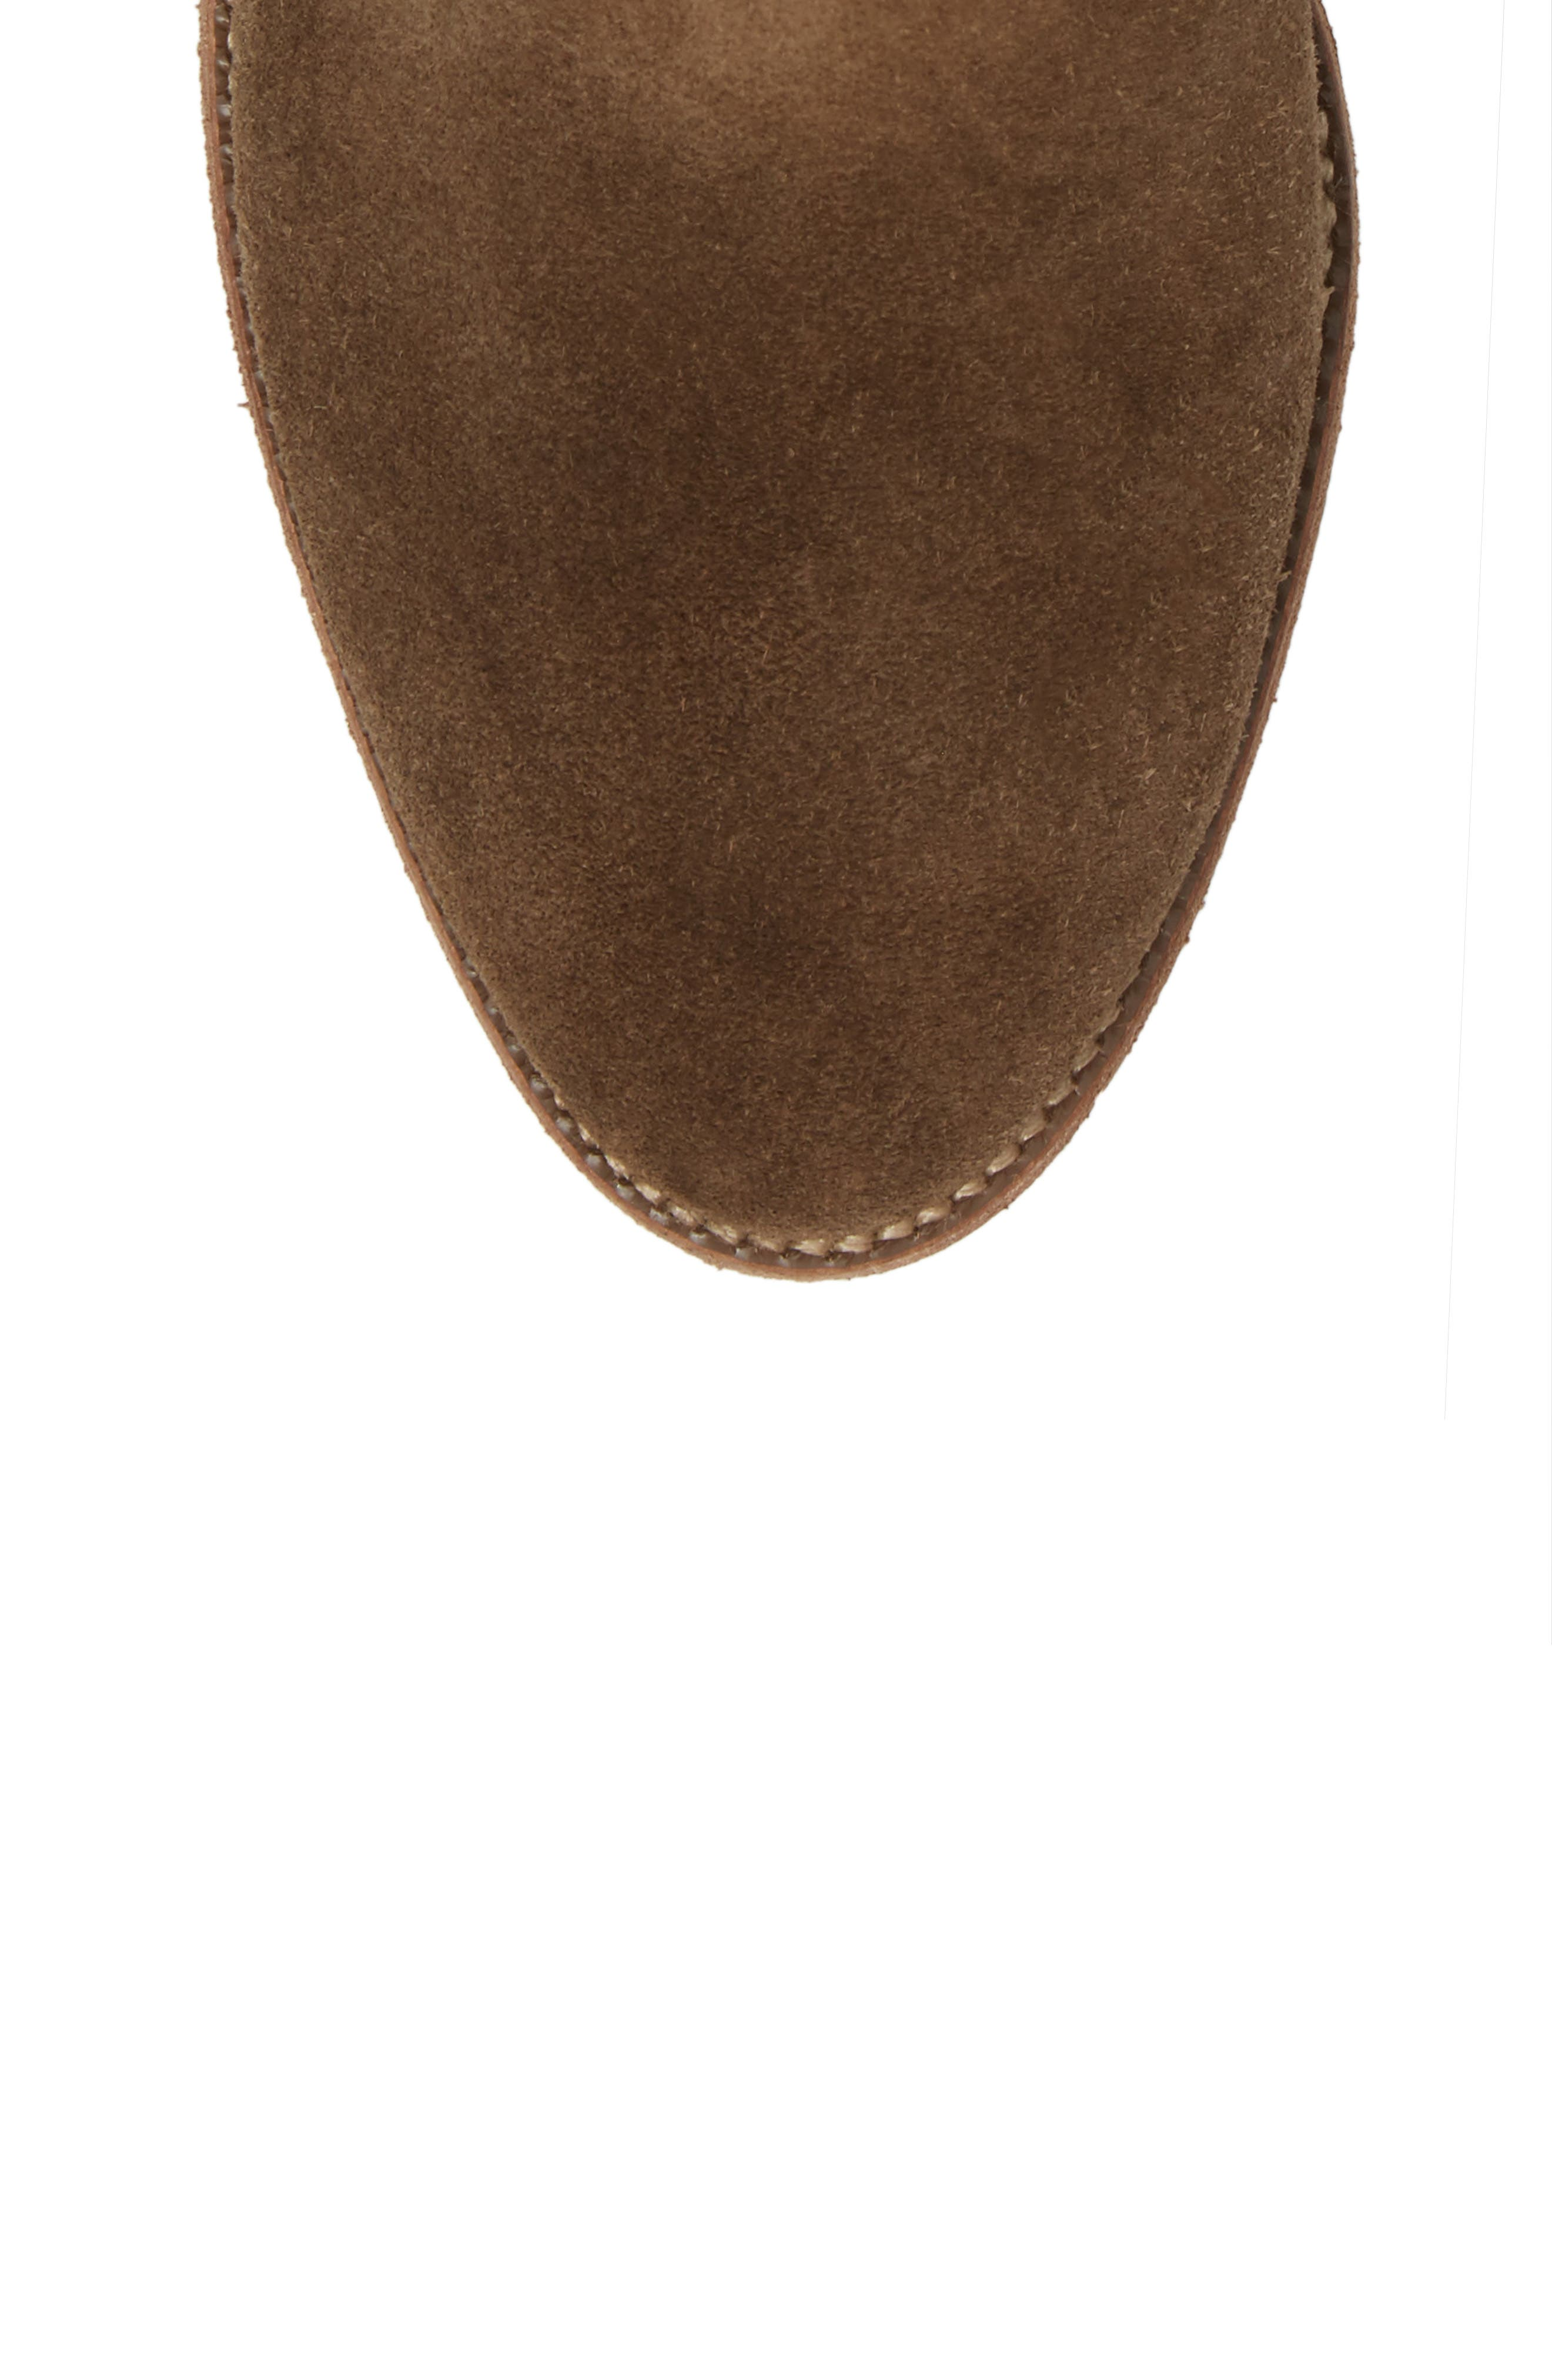 Brenner Bootie,                             Alternate thumbnail 5, color,                             Mink Suede